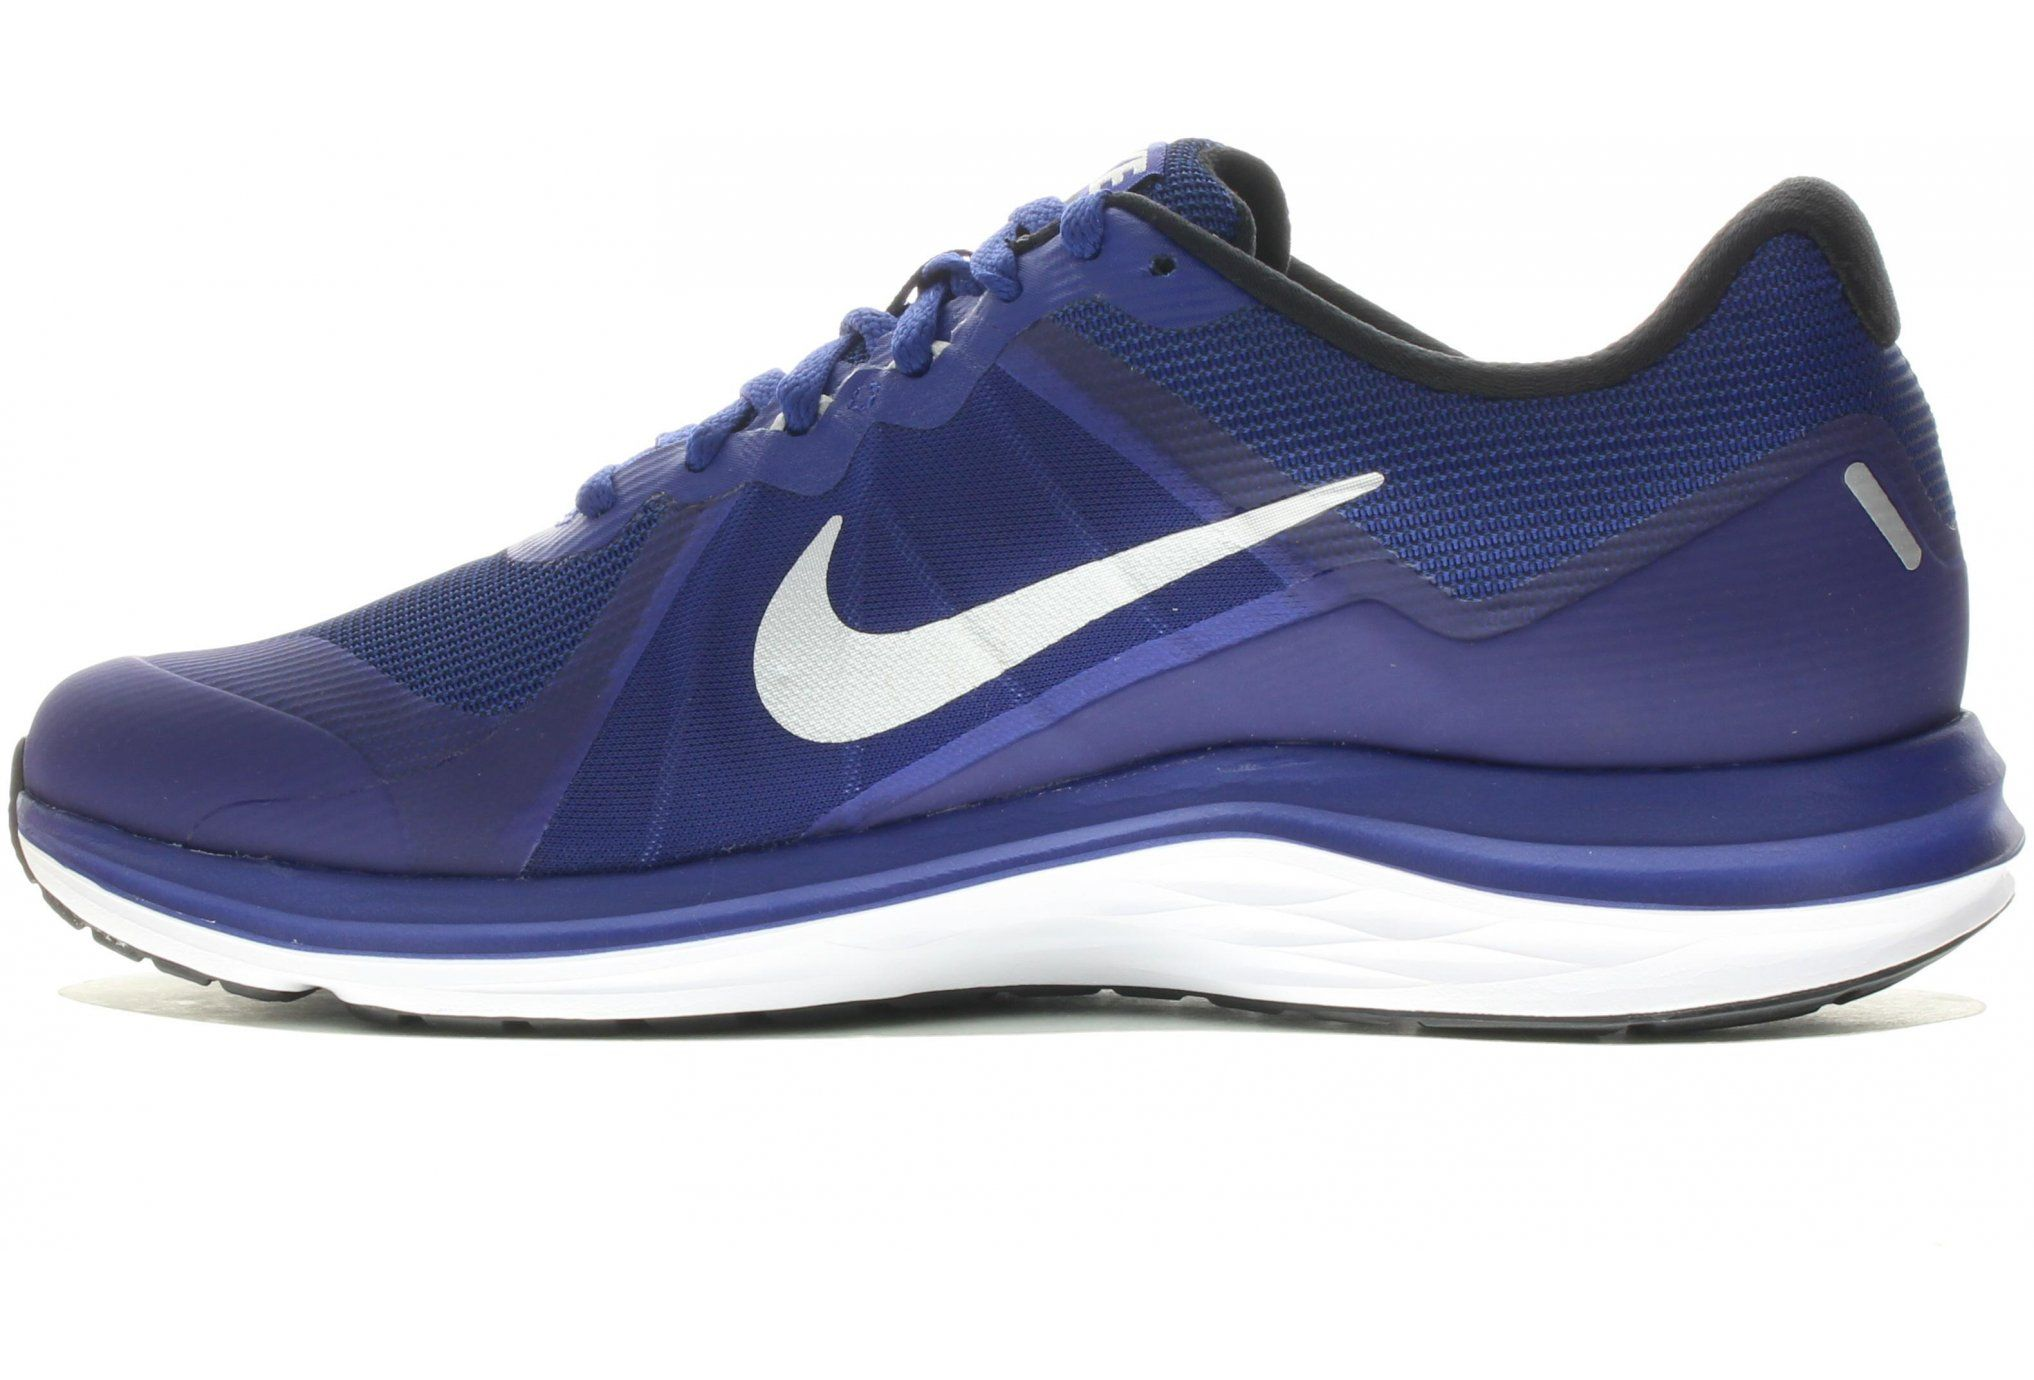 new concept ffa98 8522b Nike Dual Fusion X 2 M pas cher - Chaussures homme running Route en promo